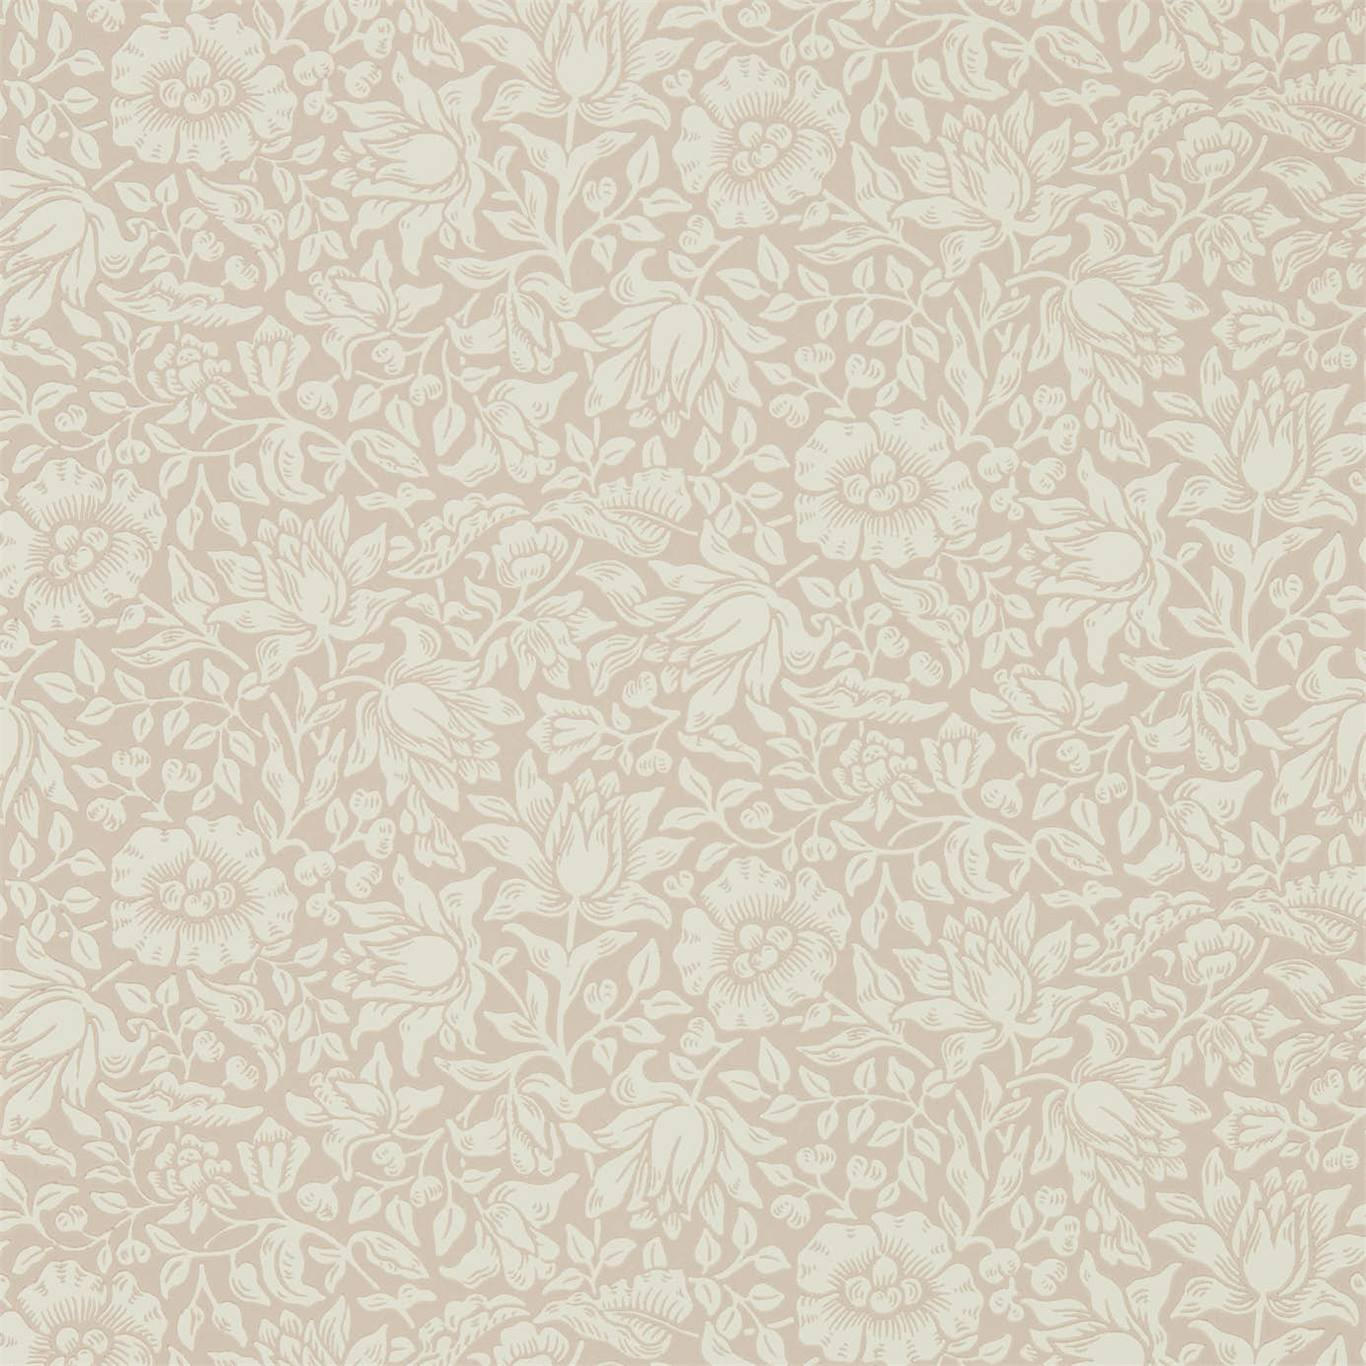 DMSW216675 Collection - Melsetter Wallpapers